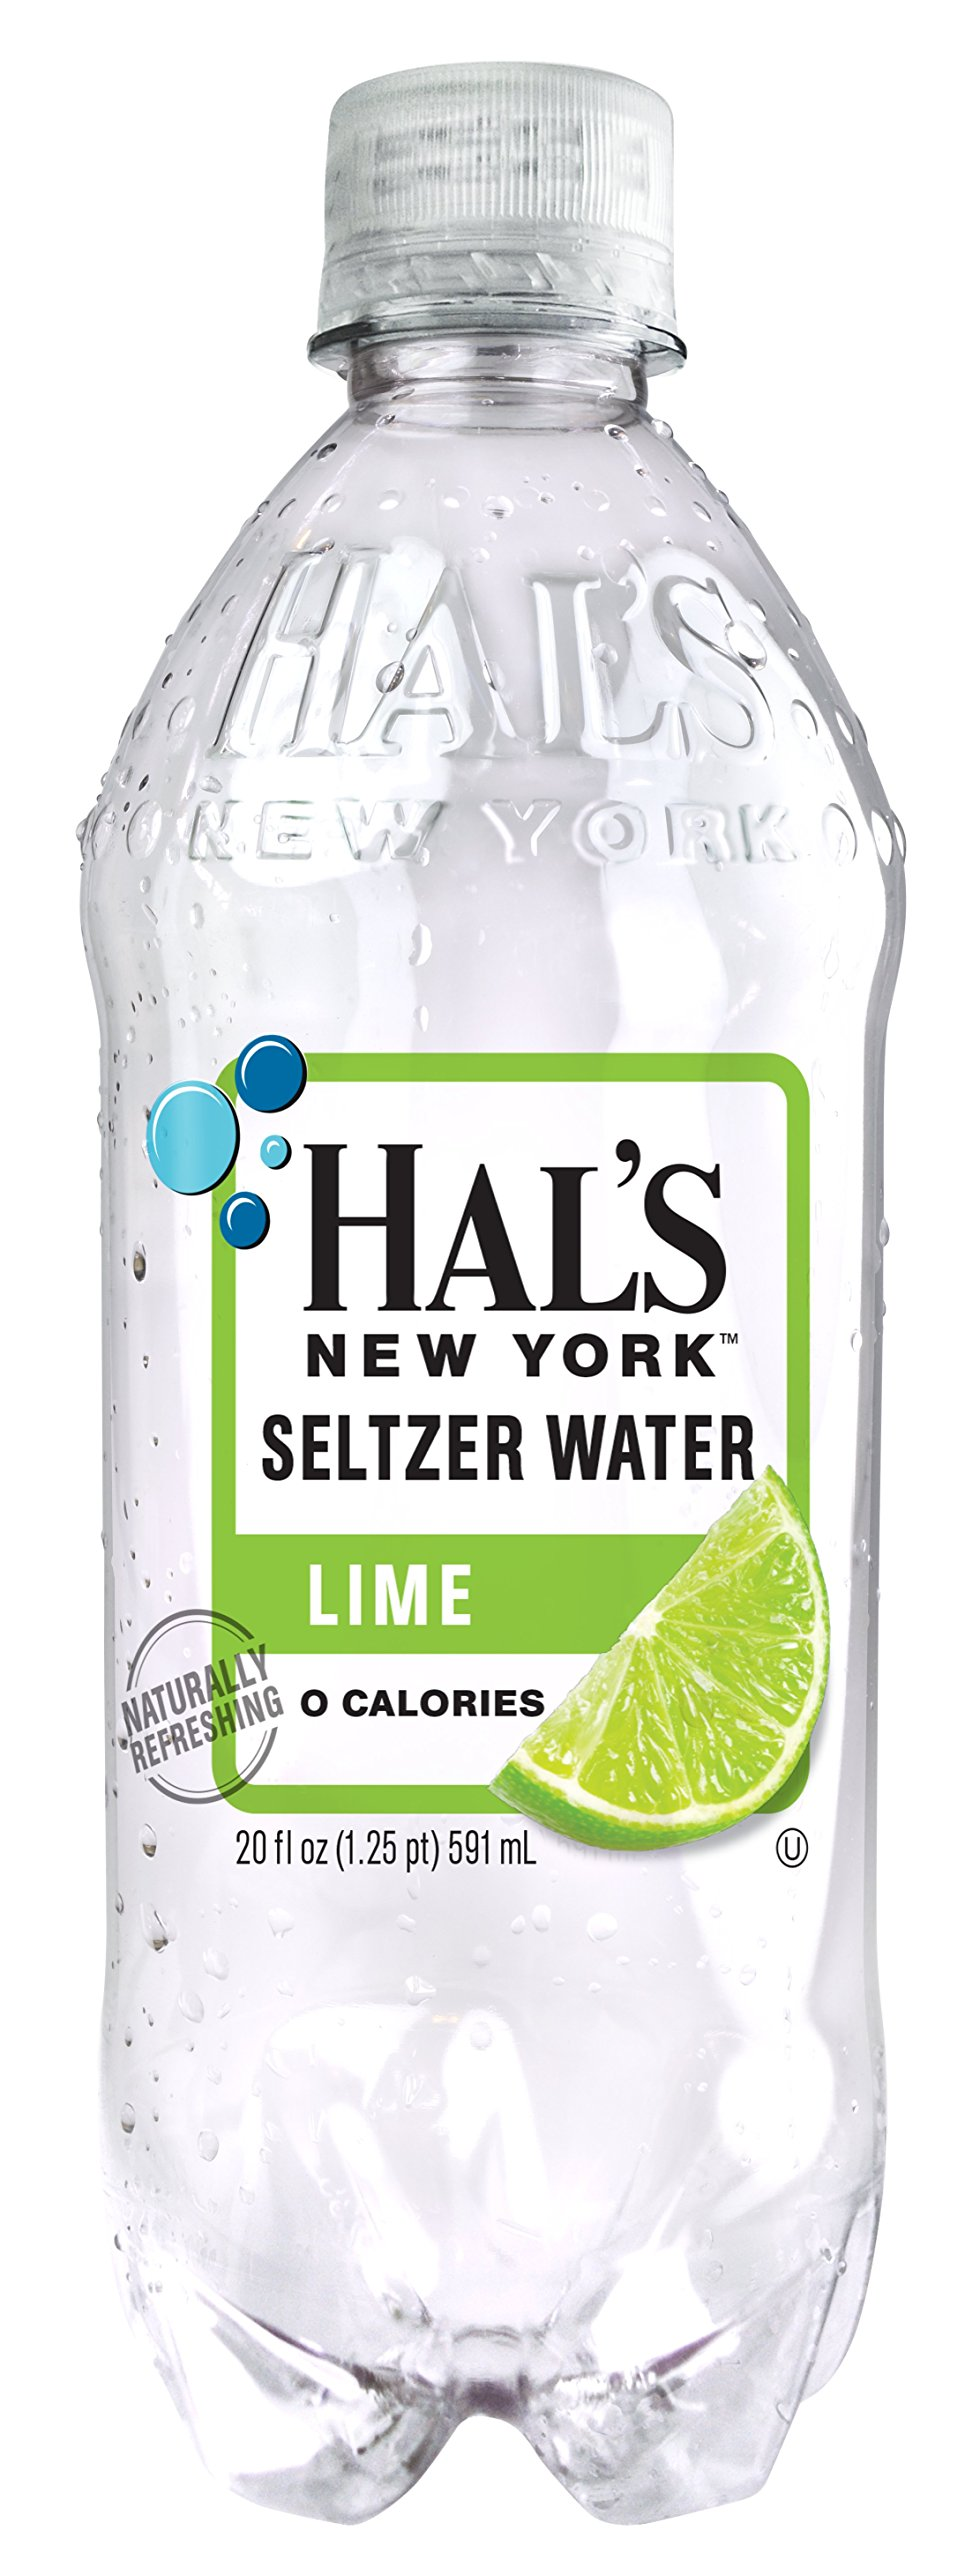 Hal's NY Seltzer Water 20 Oz Bottles (Pack of 24) (Lime) by Hal's New York